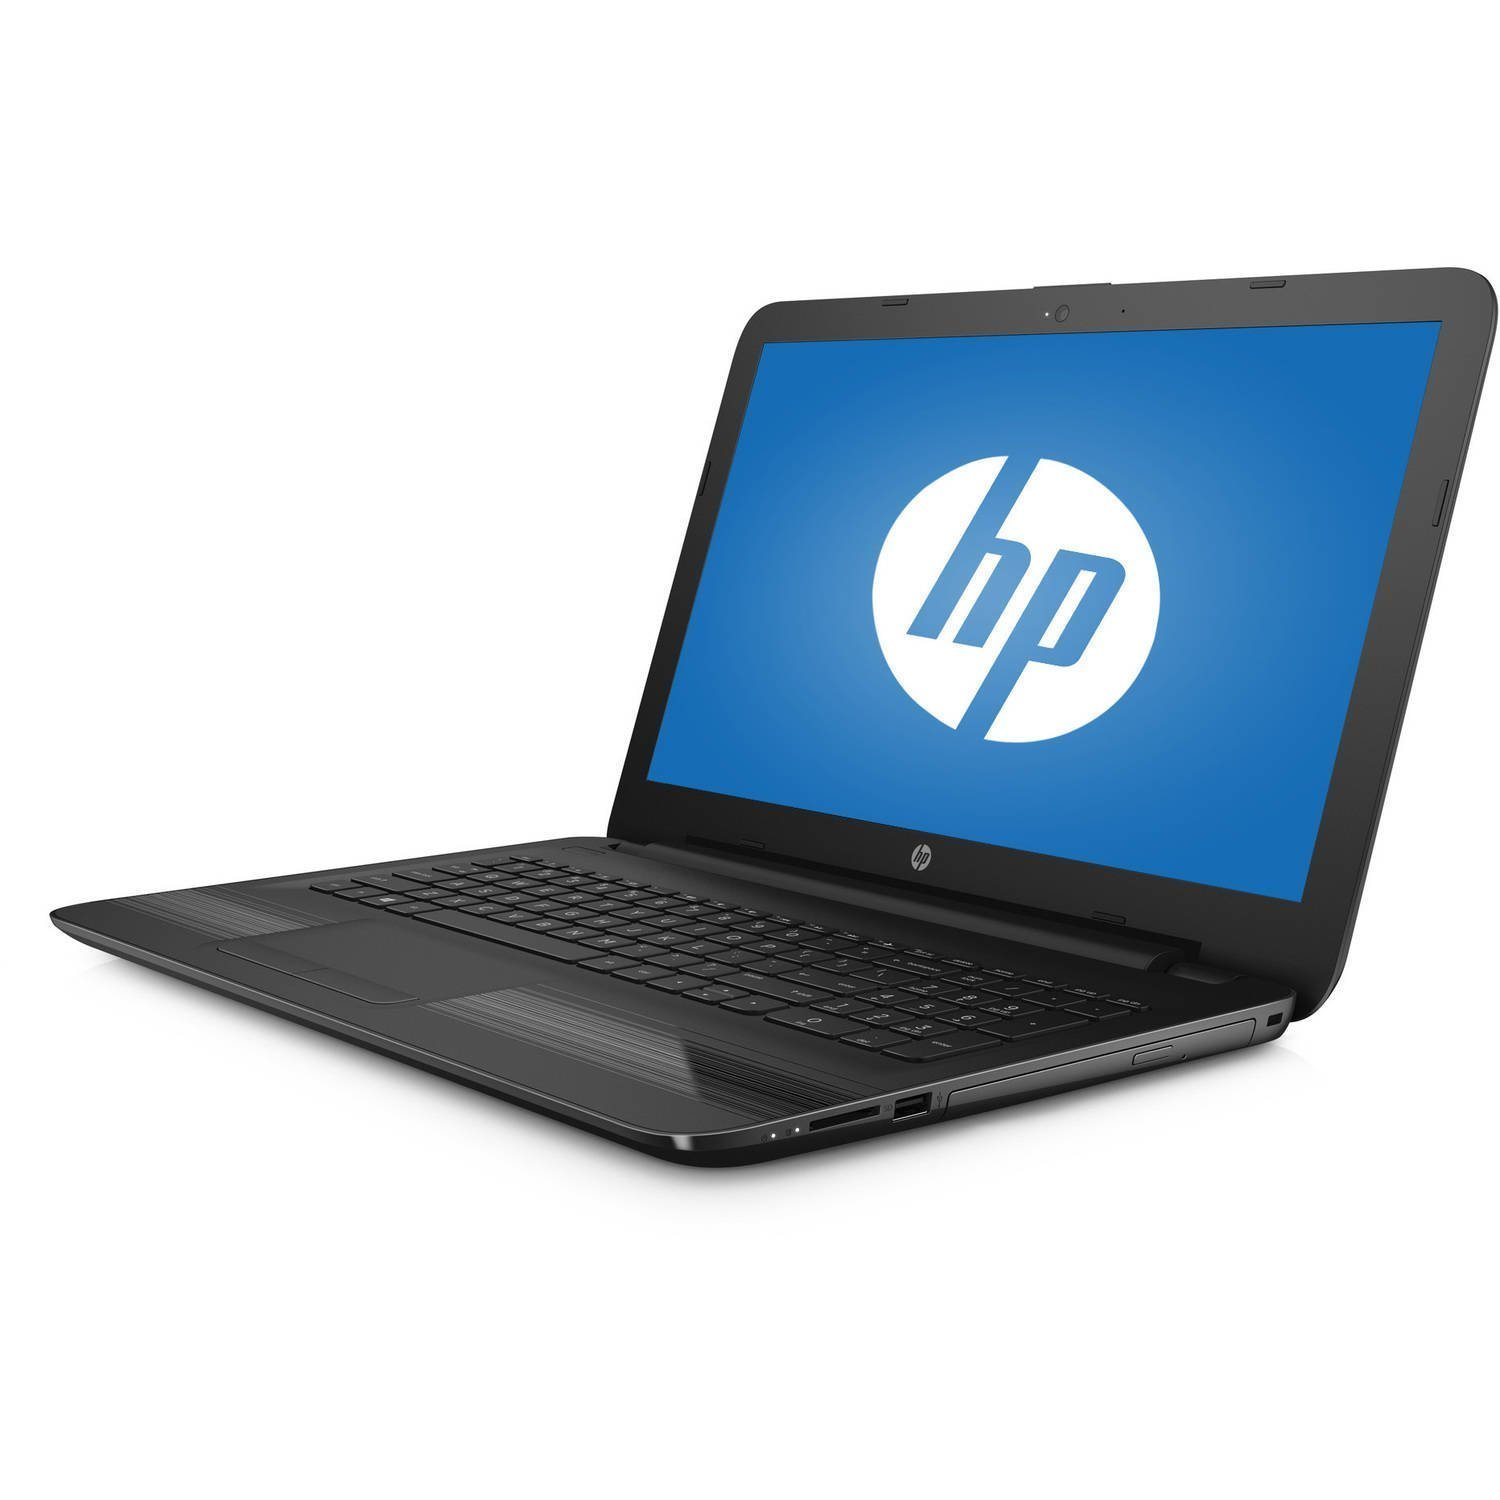 "2017 Newest HP 15.6"" HD Premium Laptop PC Computer, AMD Quad-Core E2-7110 APU 1.8GHz, 4GB DDR3 RAM, 500GB HDD, AMD Radeon R2, DVDRW, USB 3.0, HD Webcam, HDMI, Rj-45, Windows 10 Home"